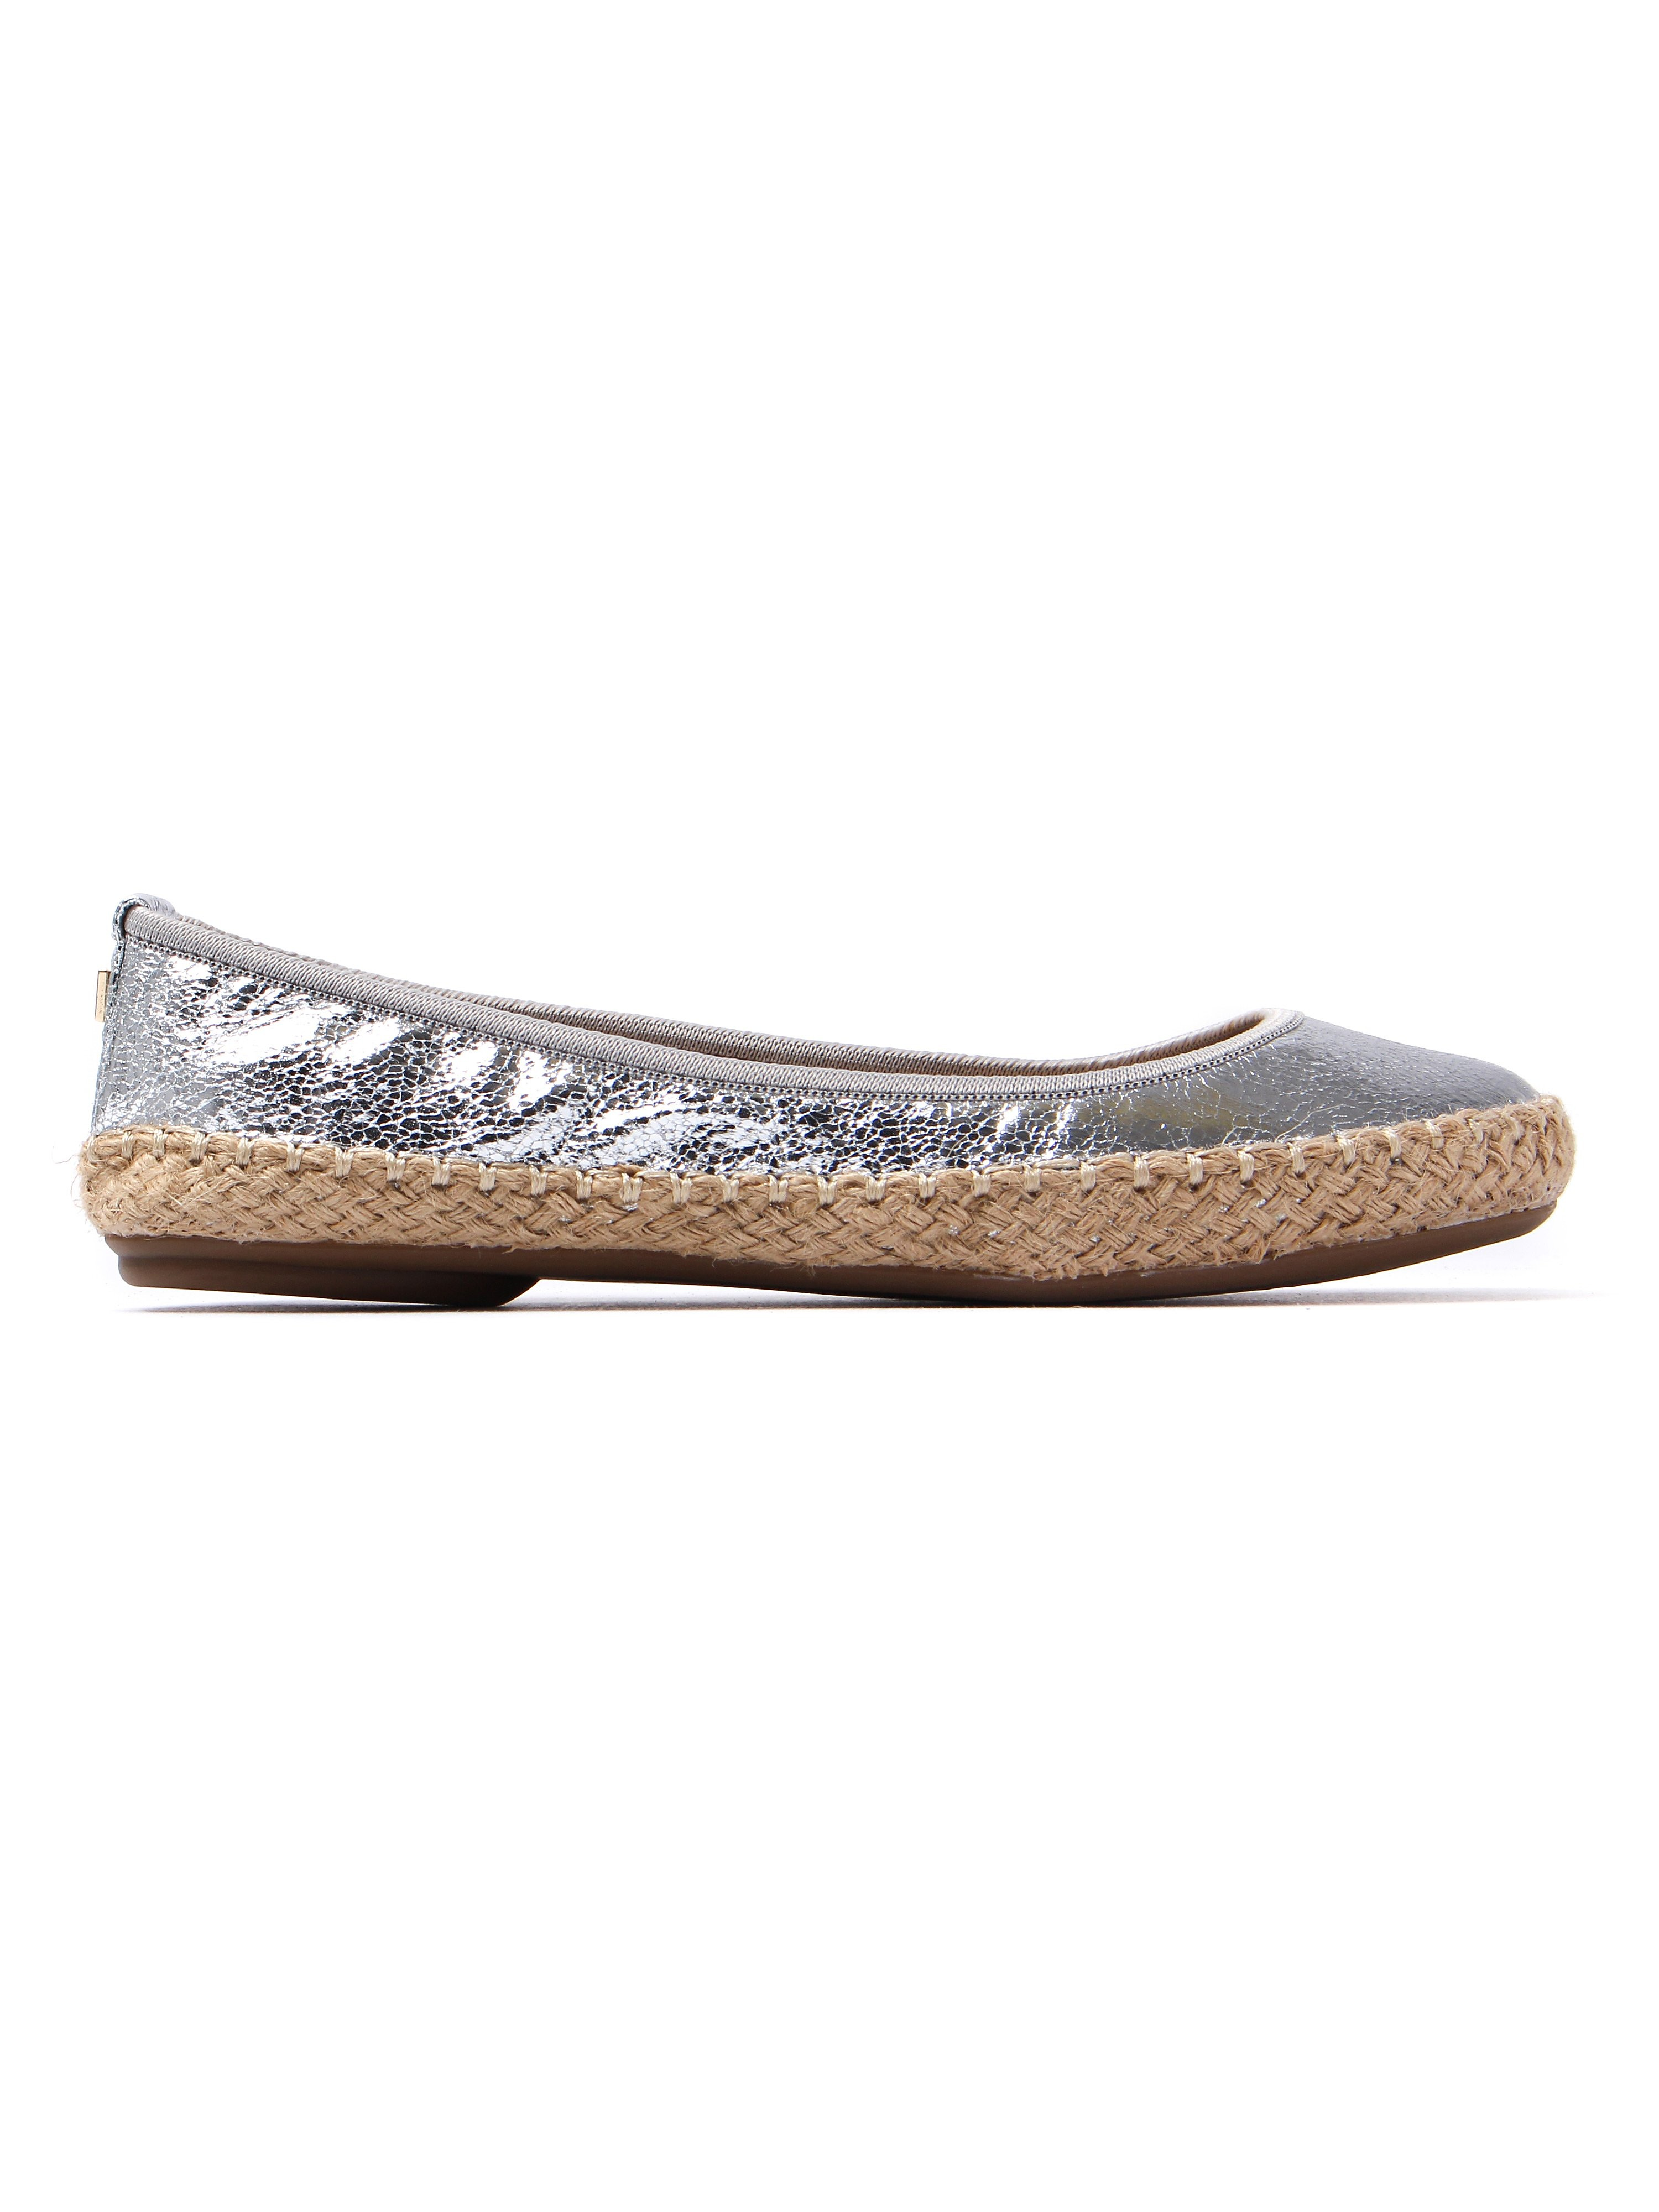 Butterfly Twists Women's Gigi Cracked Canvas Foldable Ballerina Pumps - Silver